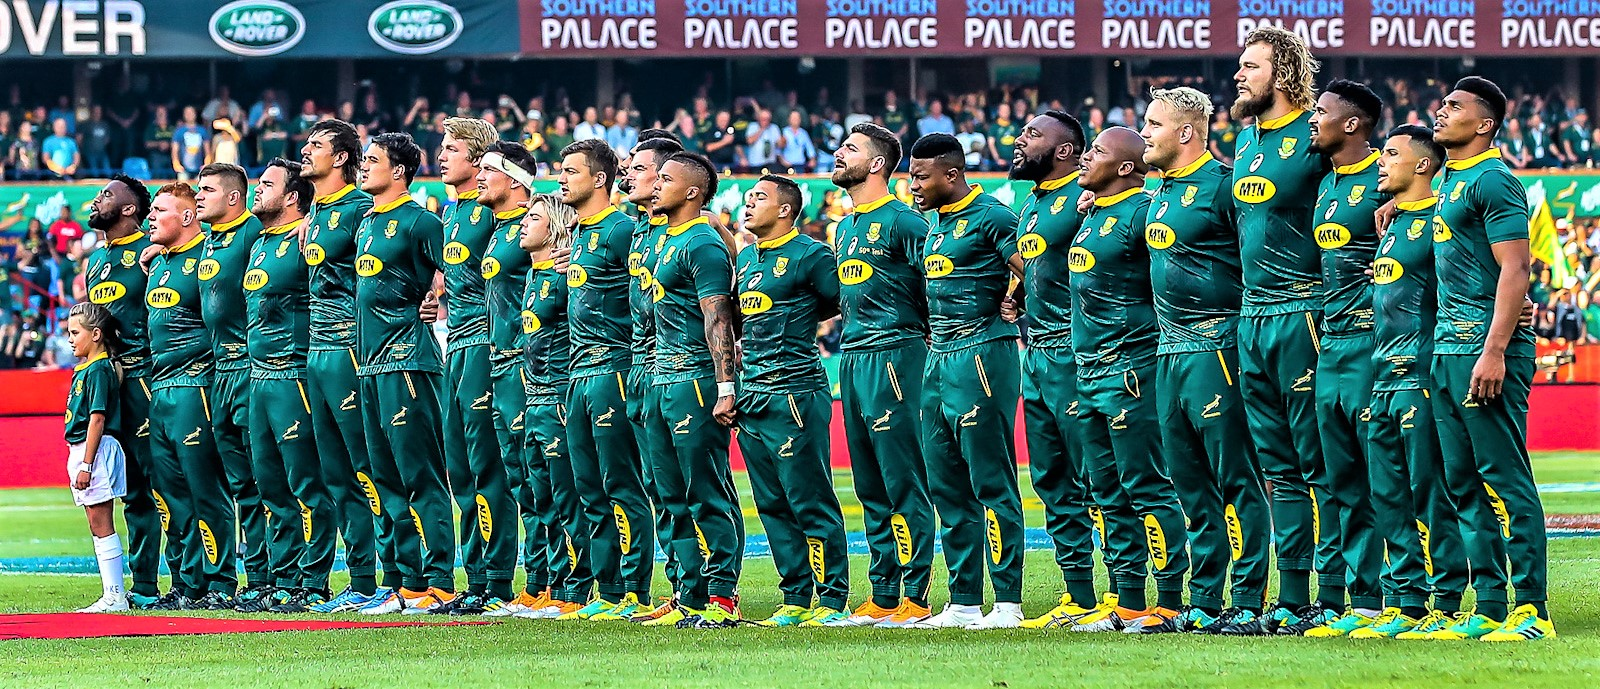 South Africa vs Japan Rugby World Cup 2019